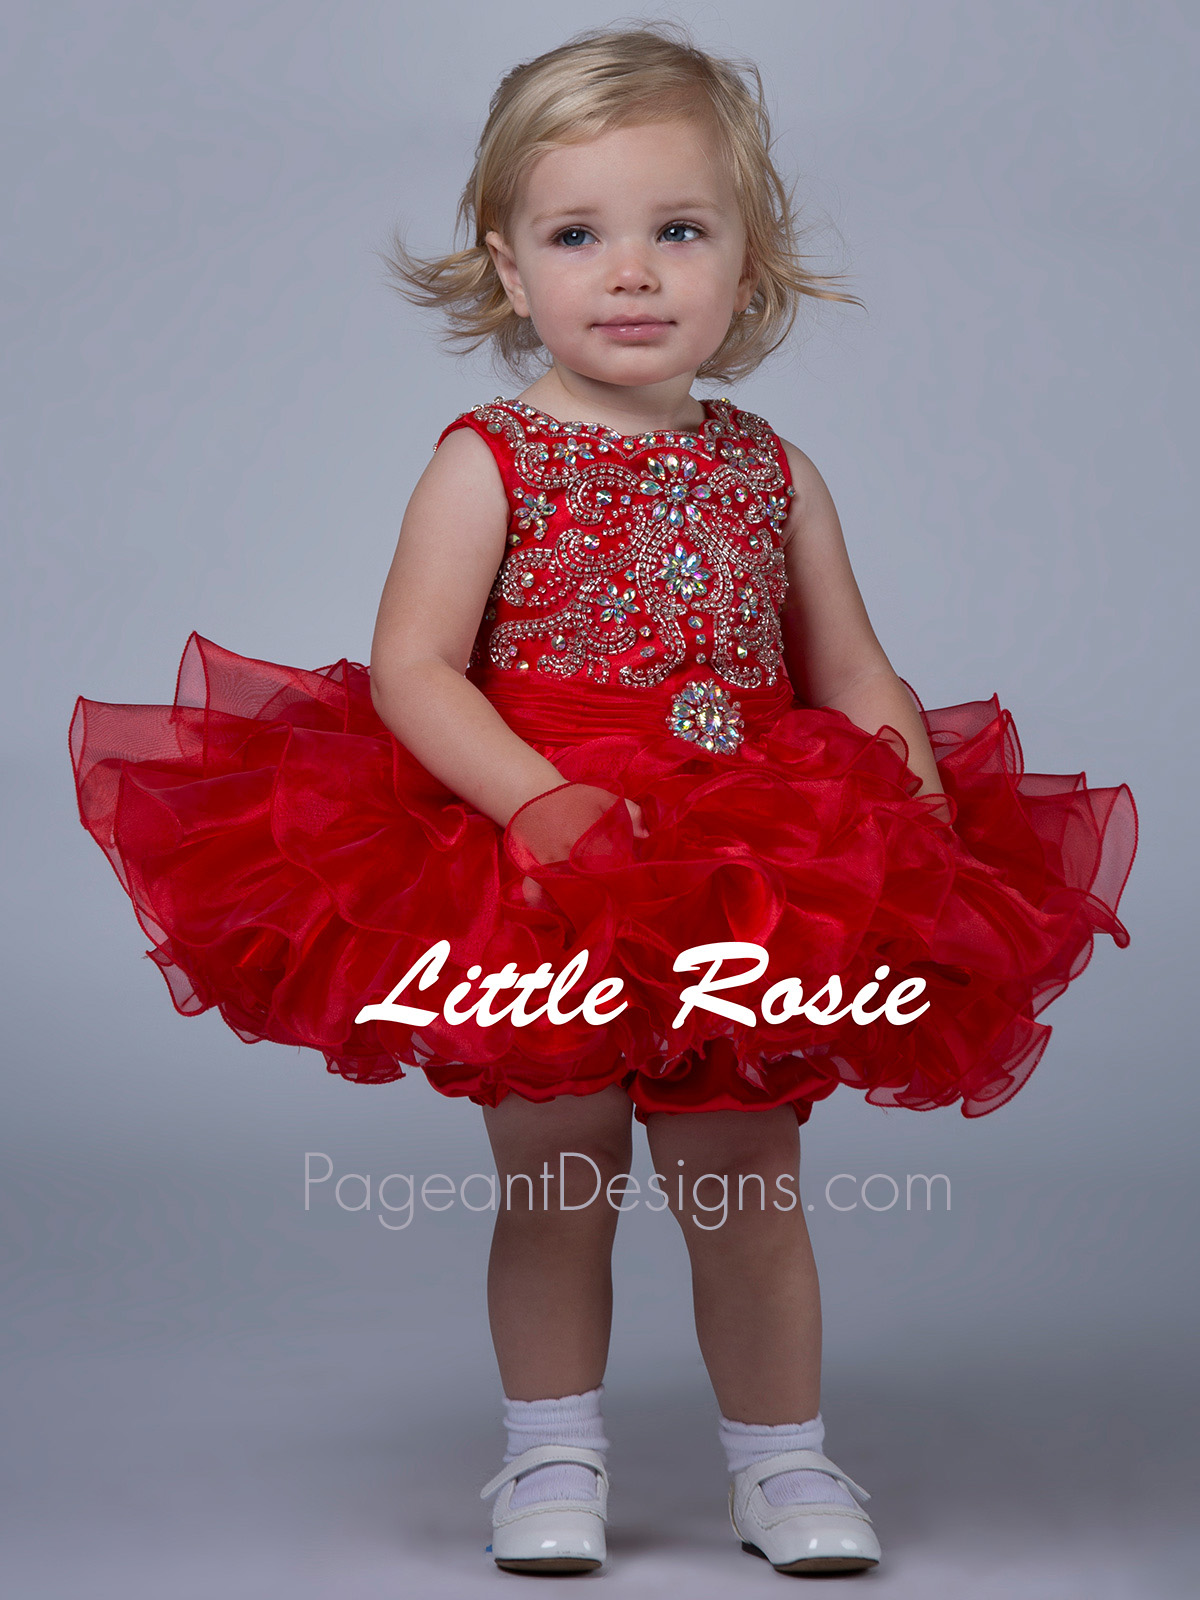 Best Little Rosie Baby Pageant Dresses | PageantDesigns.com